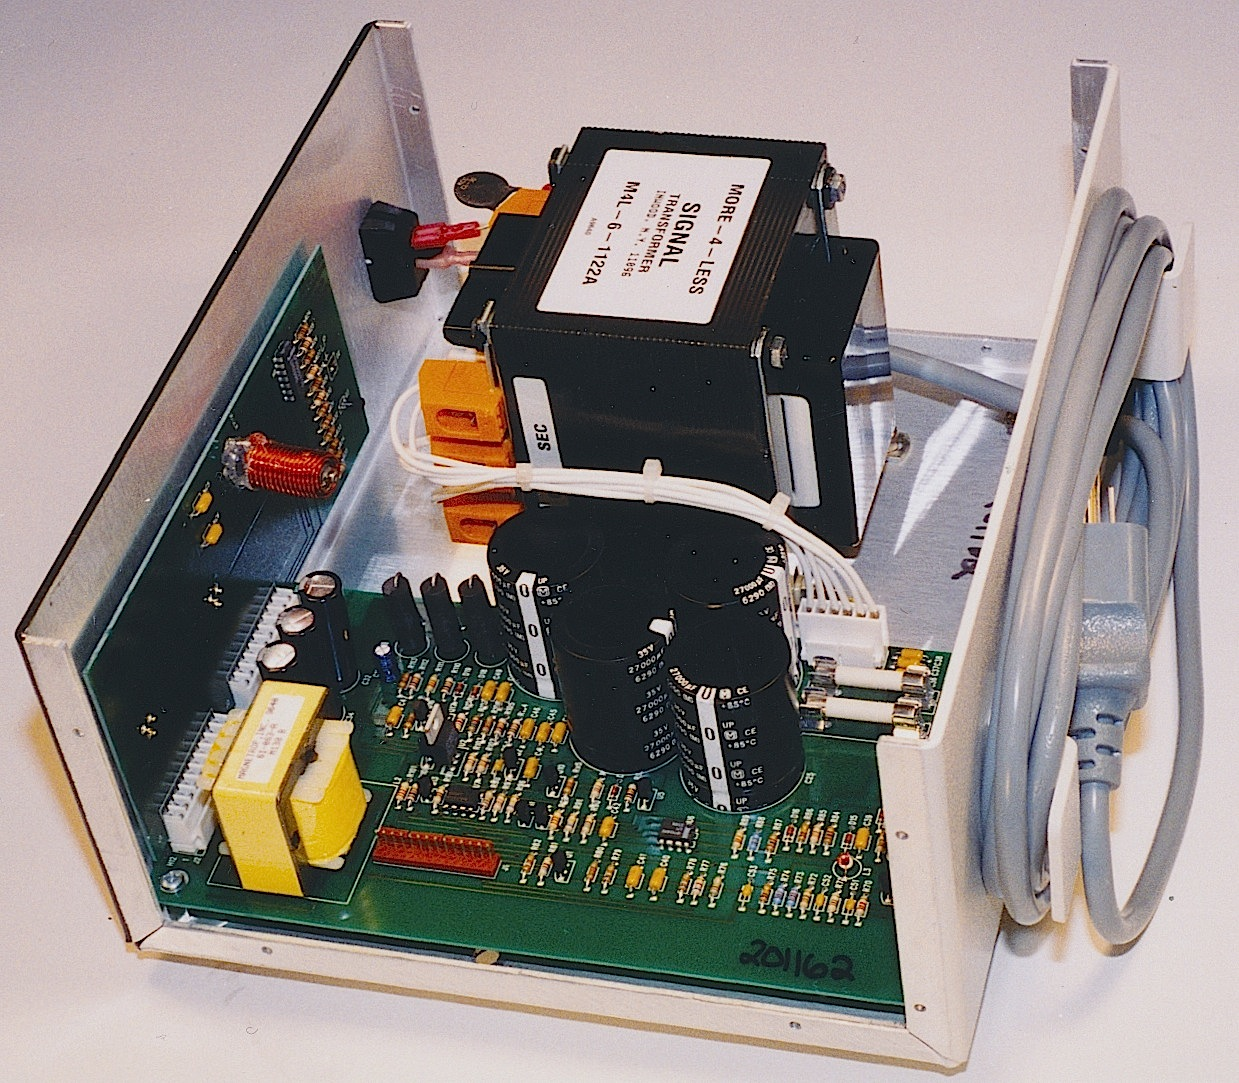 Dr. Wood provides Power Electronics Design Services